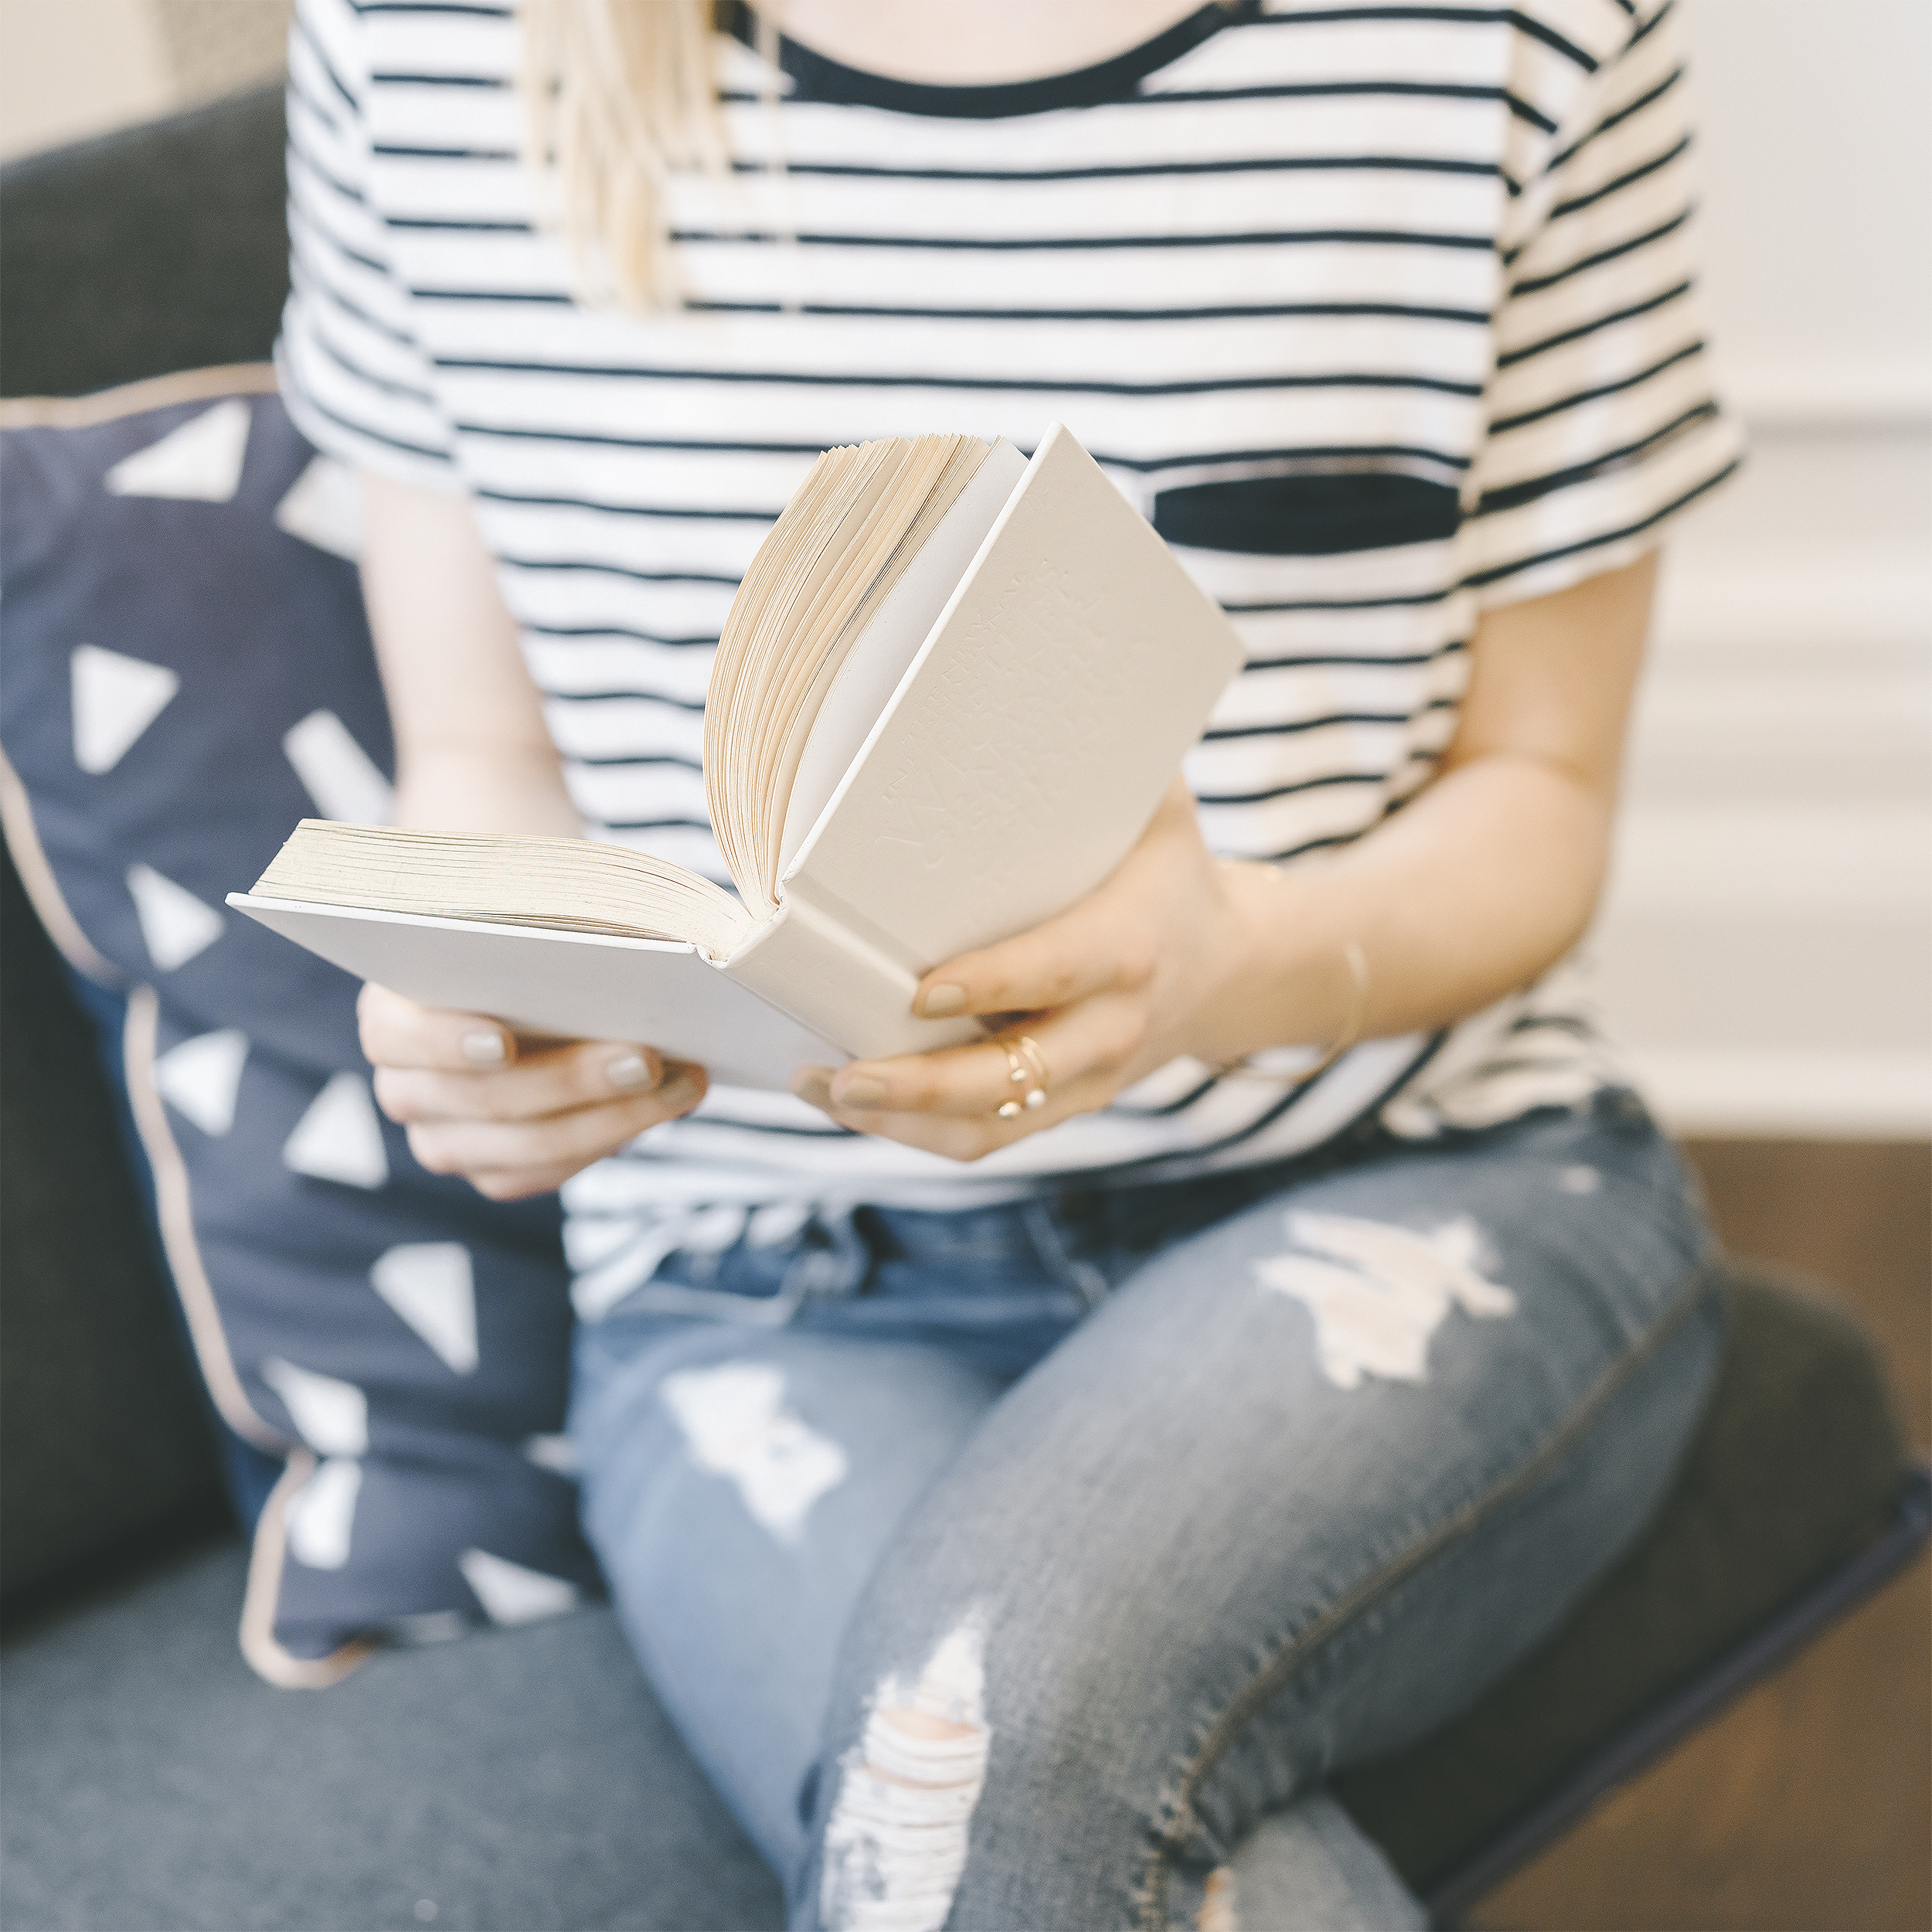 5 Simple tips to Easily Read 12 Books in a Year